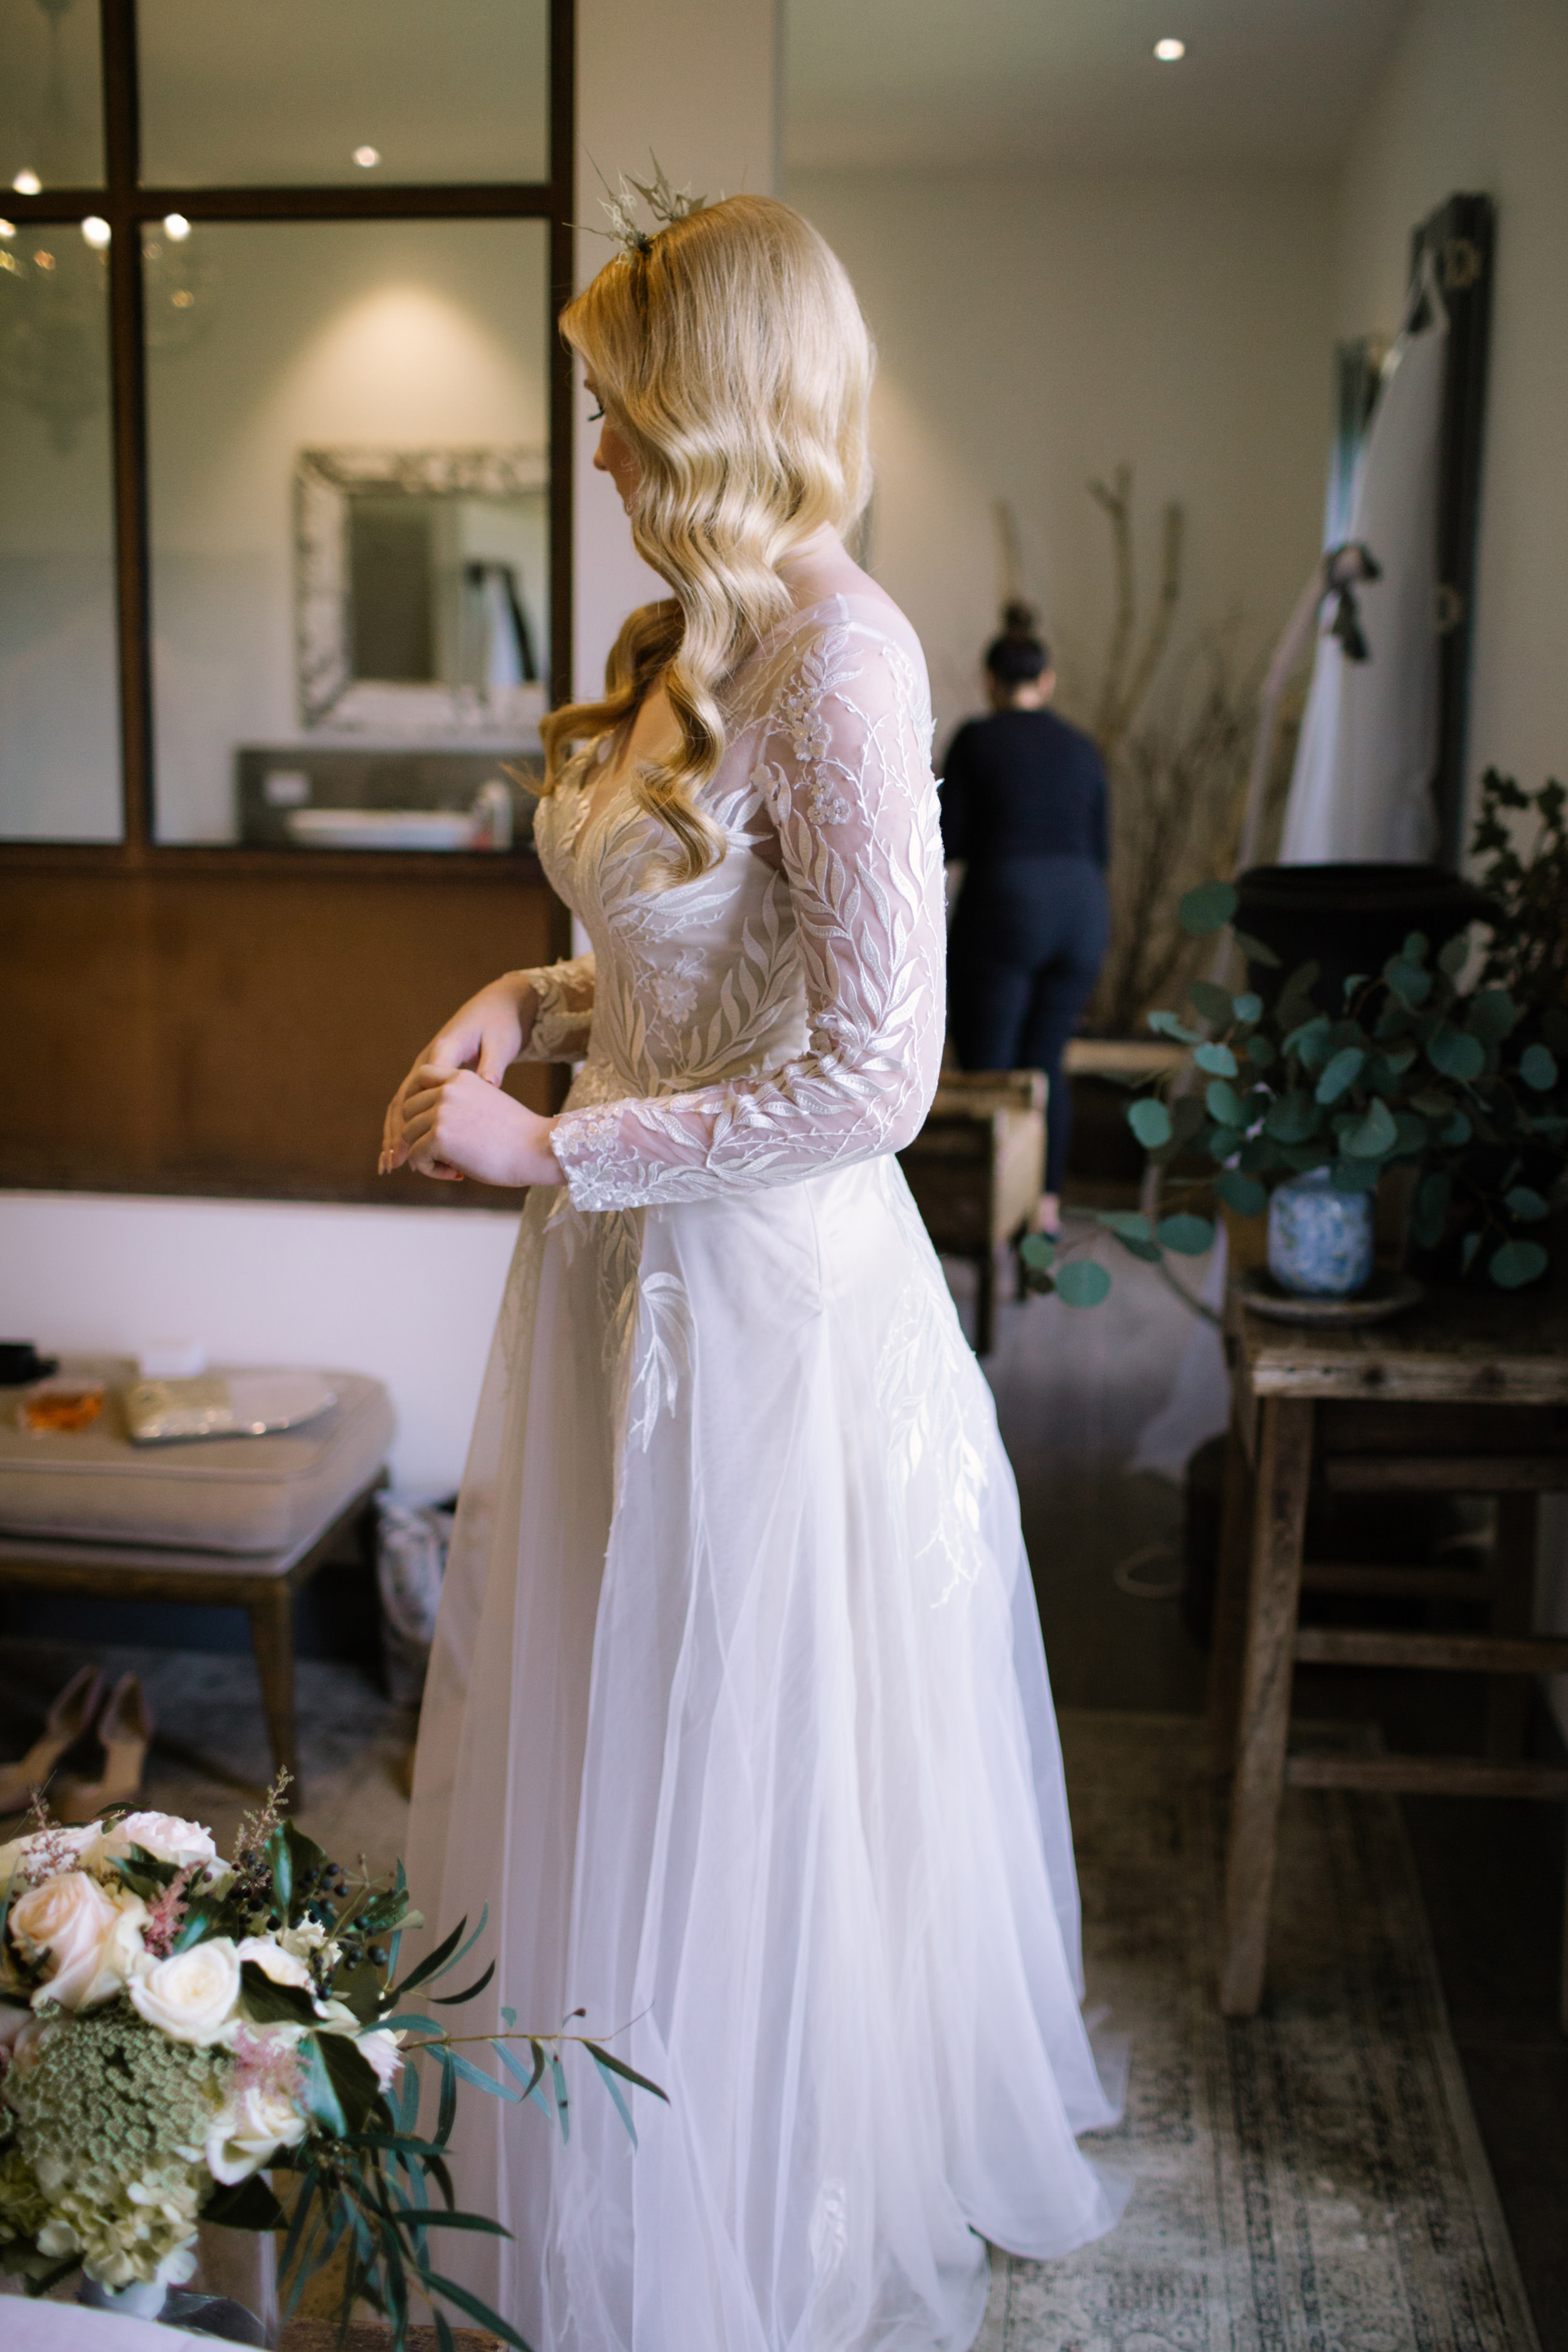 I-Got-You-Babe-&.Co.-Stones-of-the-Yarra-Valley-Wedding-Beverly-Ross0014.JPG